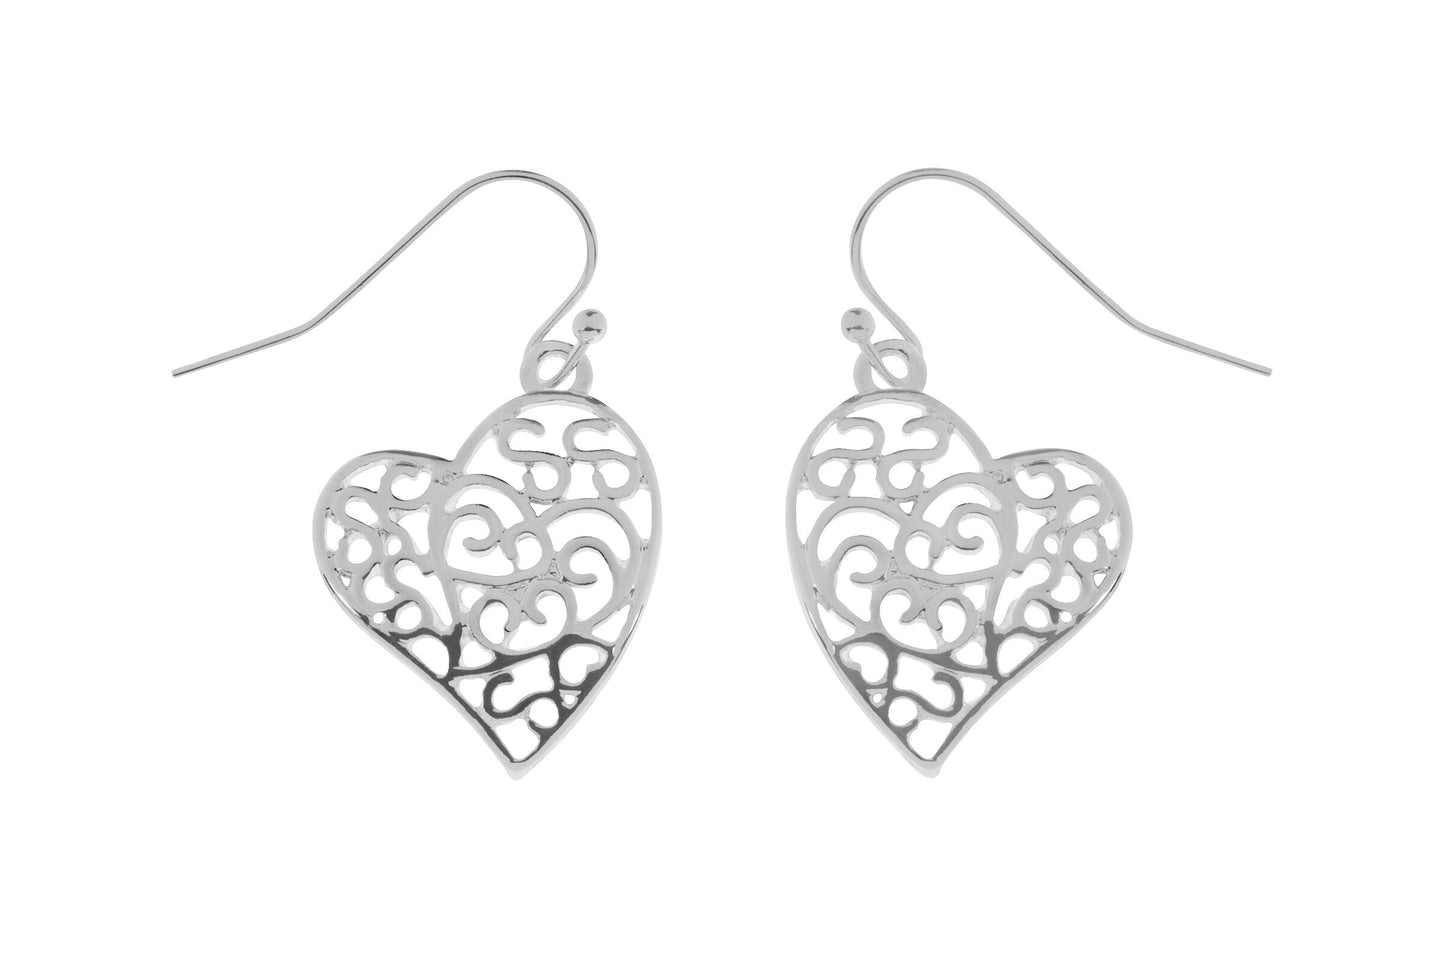 Beautiful Hook Heart Earrings - Quirky Giftz Ltd